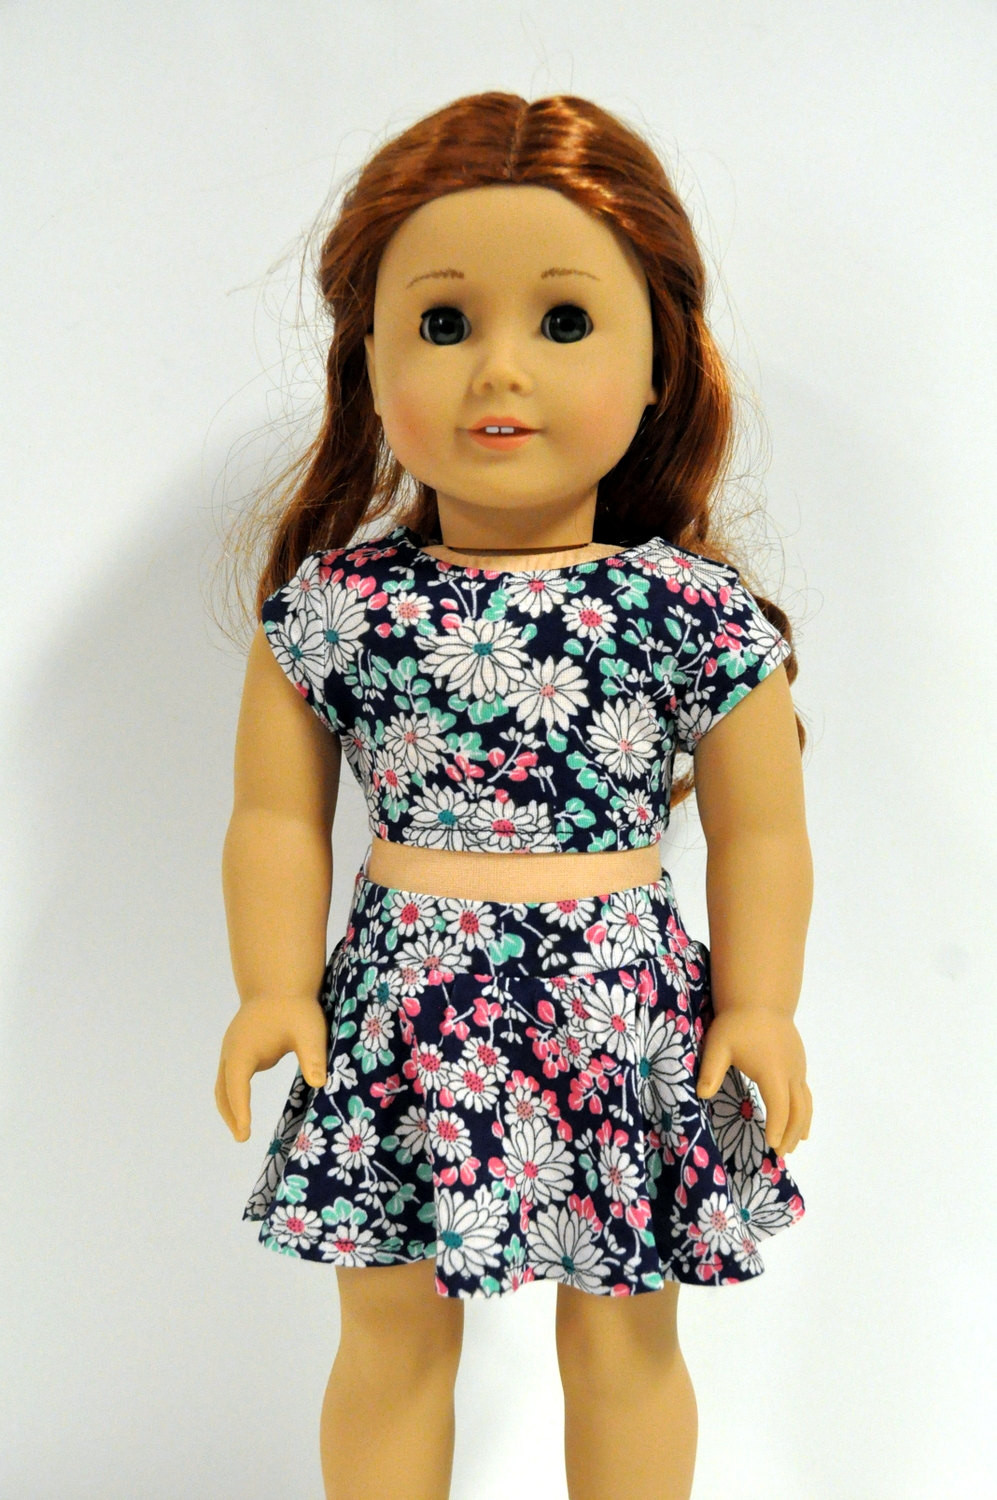 Best Of Navy Teal and Coral Floral Skater Skirt and Crop top 18 Inch American Girl Doll Skirts Of Incredible 50 Ideas American Girl Doll Skirts